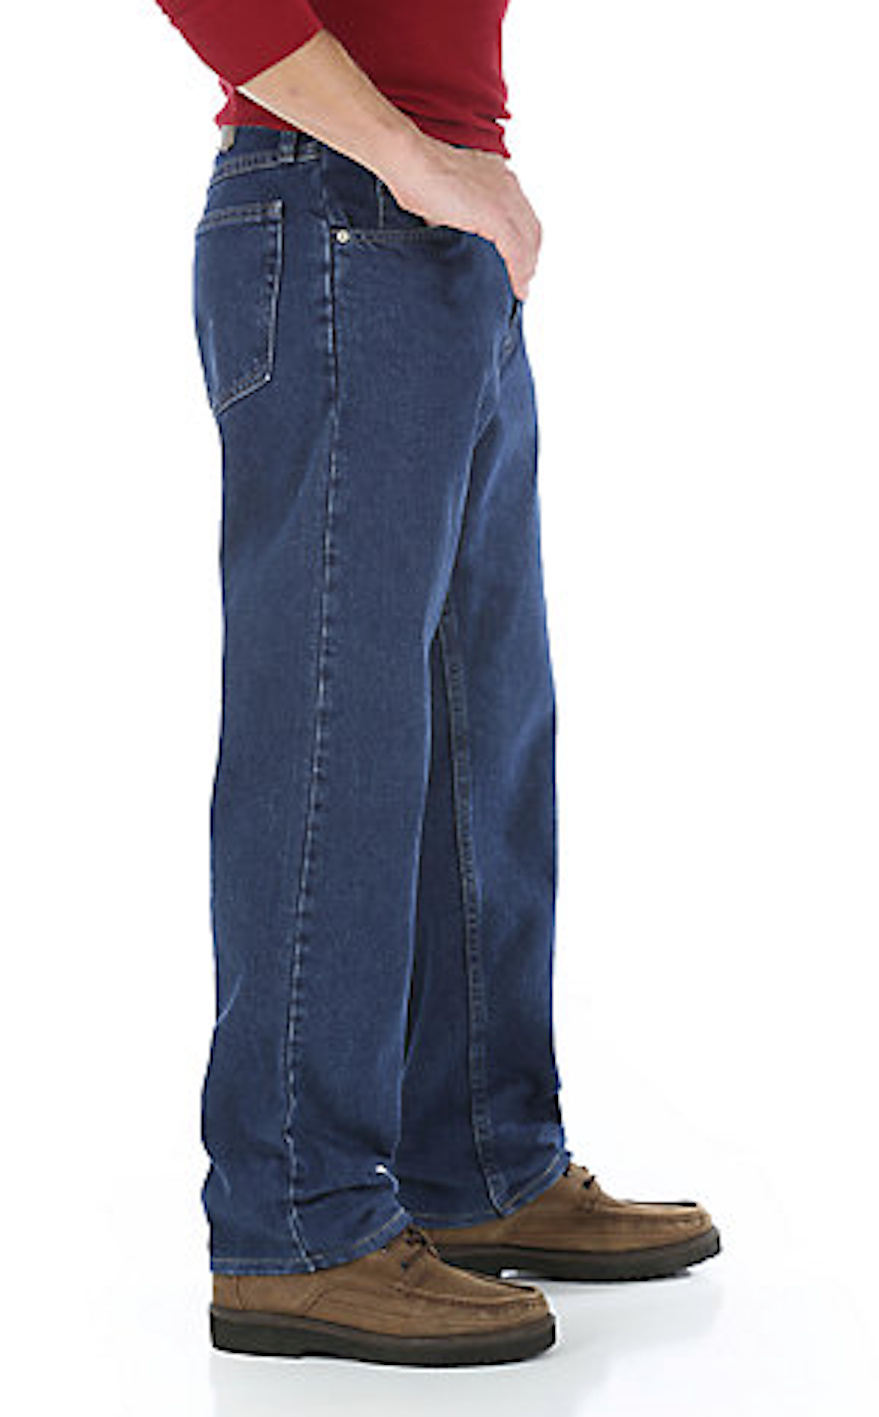 Wrangler Men/'s Jeans Five Star Regular Fit Style 96501DS 36 x 32 OR 36 x 30